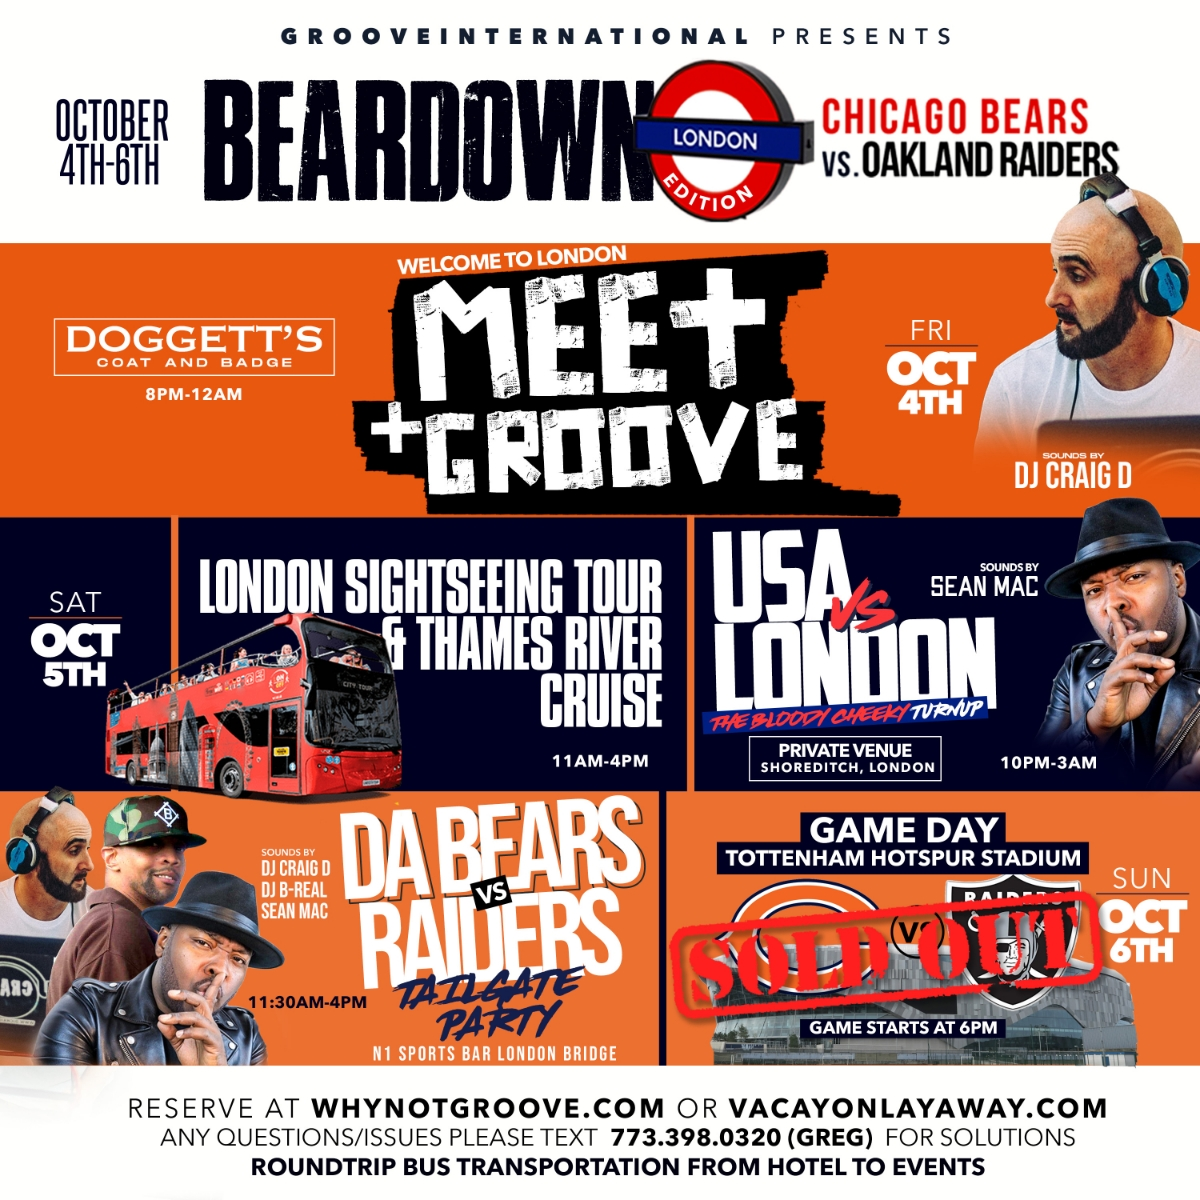 Bear Down: The London Edition